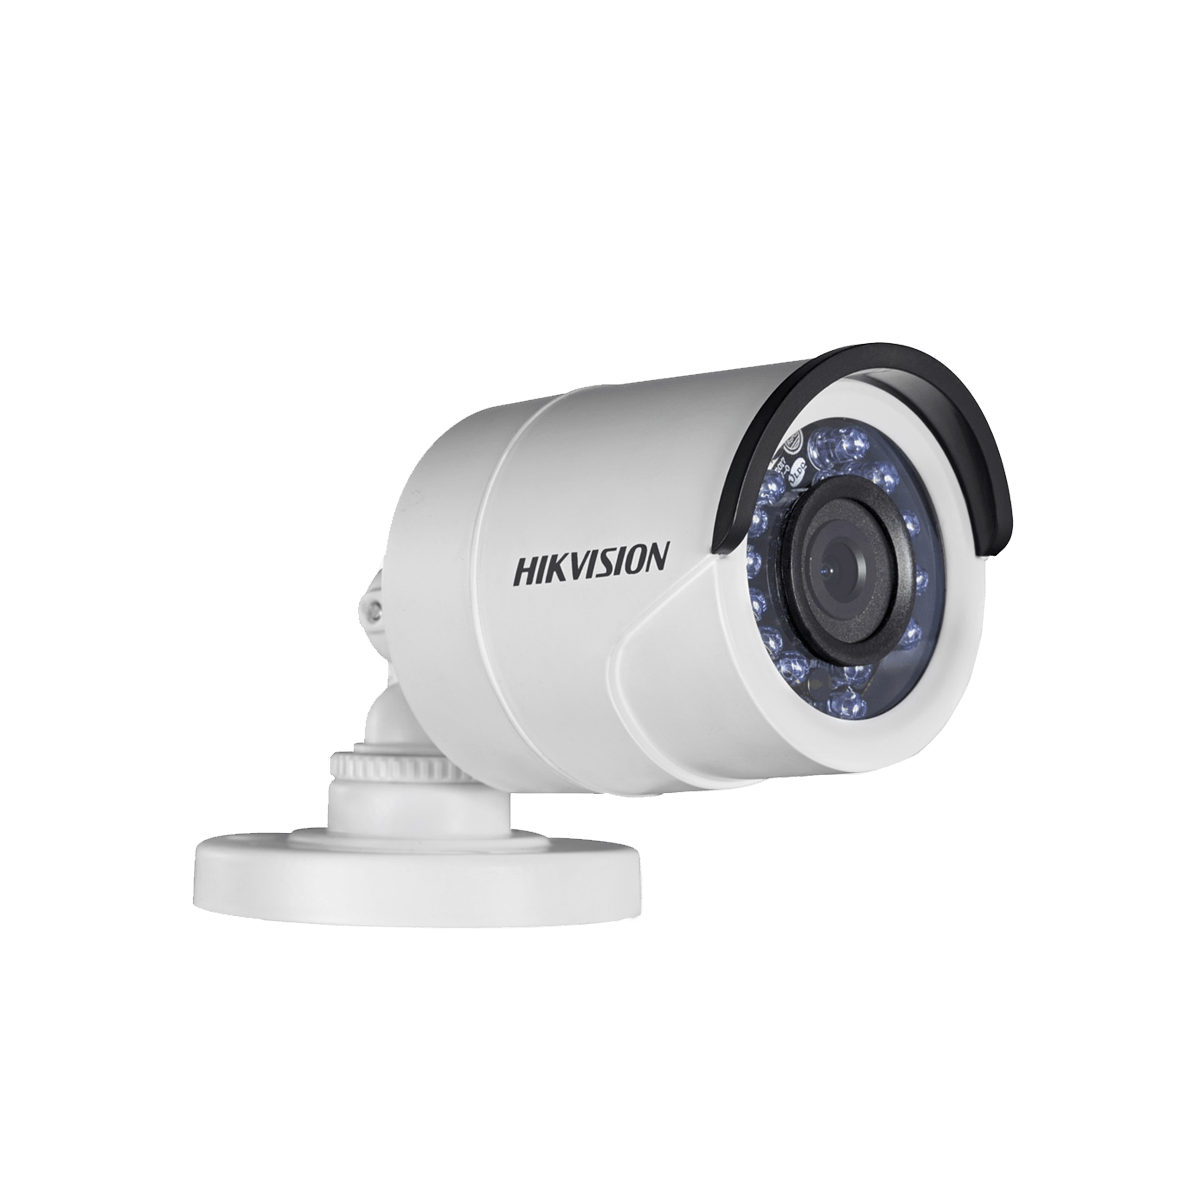 Hikvision 1 MP HD720P Indoor / Outdoor IR Bullet Camera | DS-2CE16C0T-IRPF